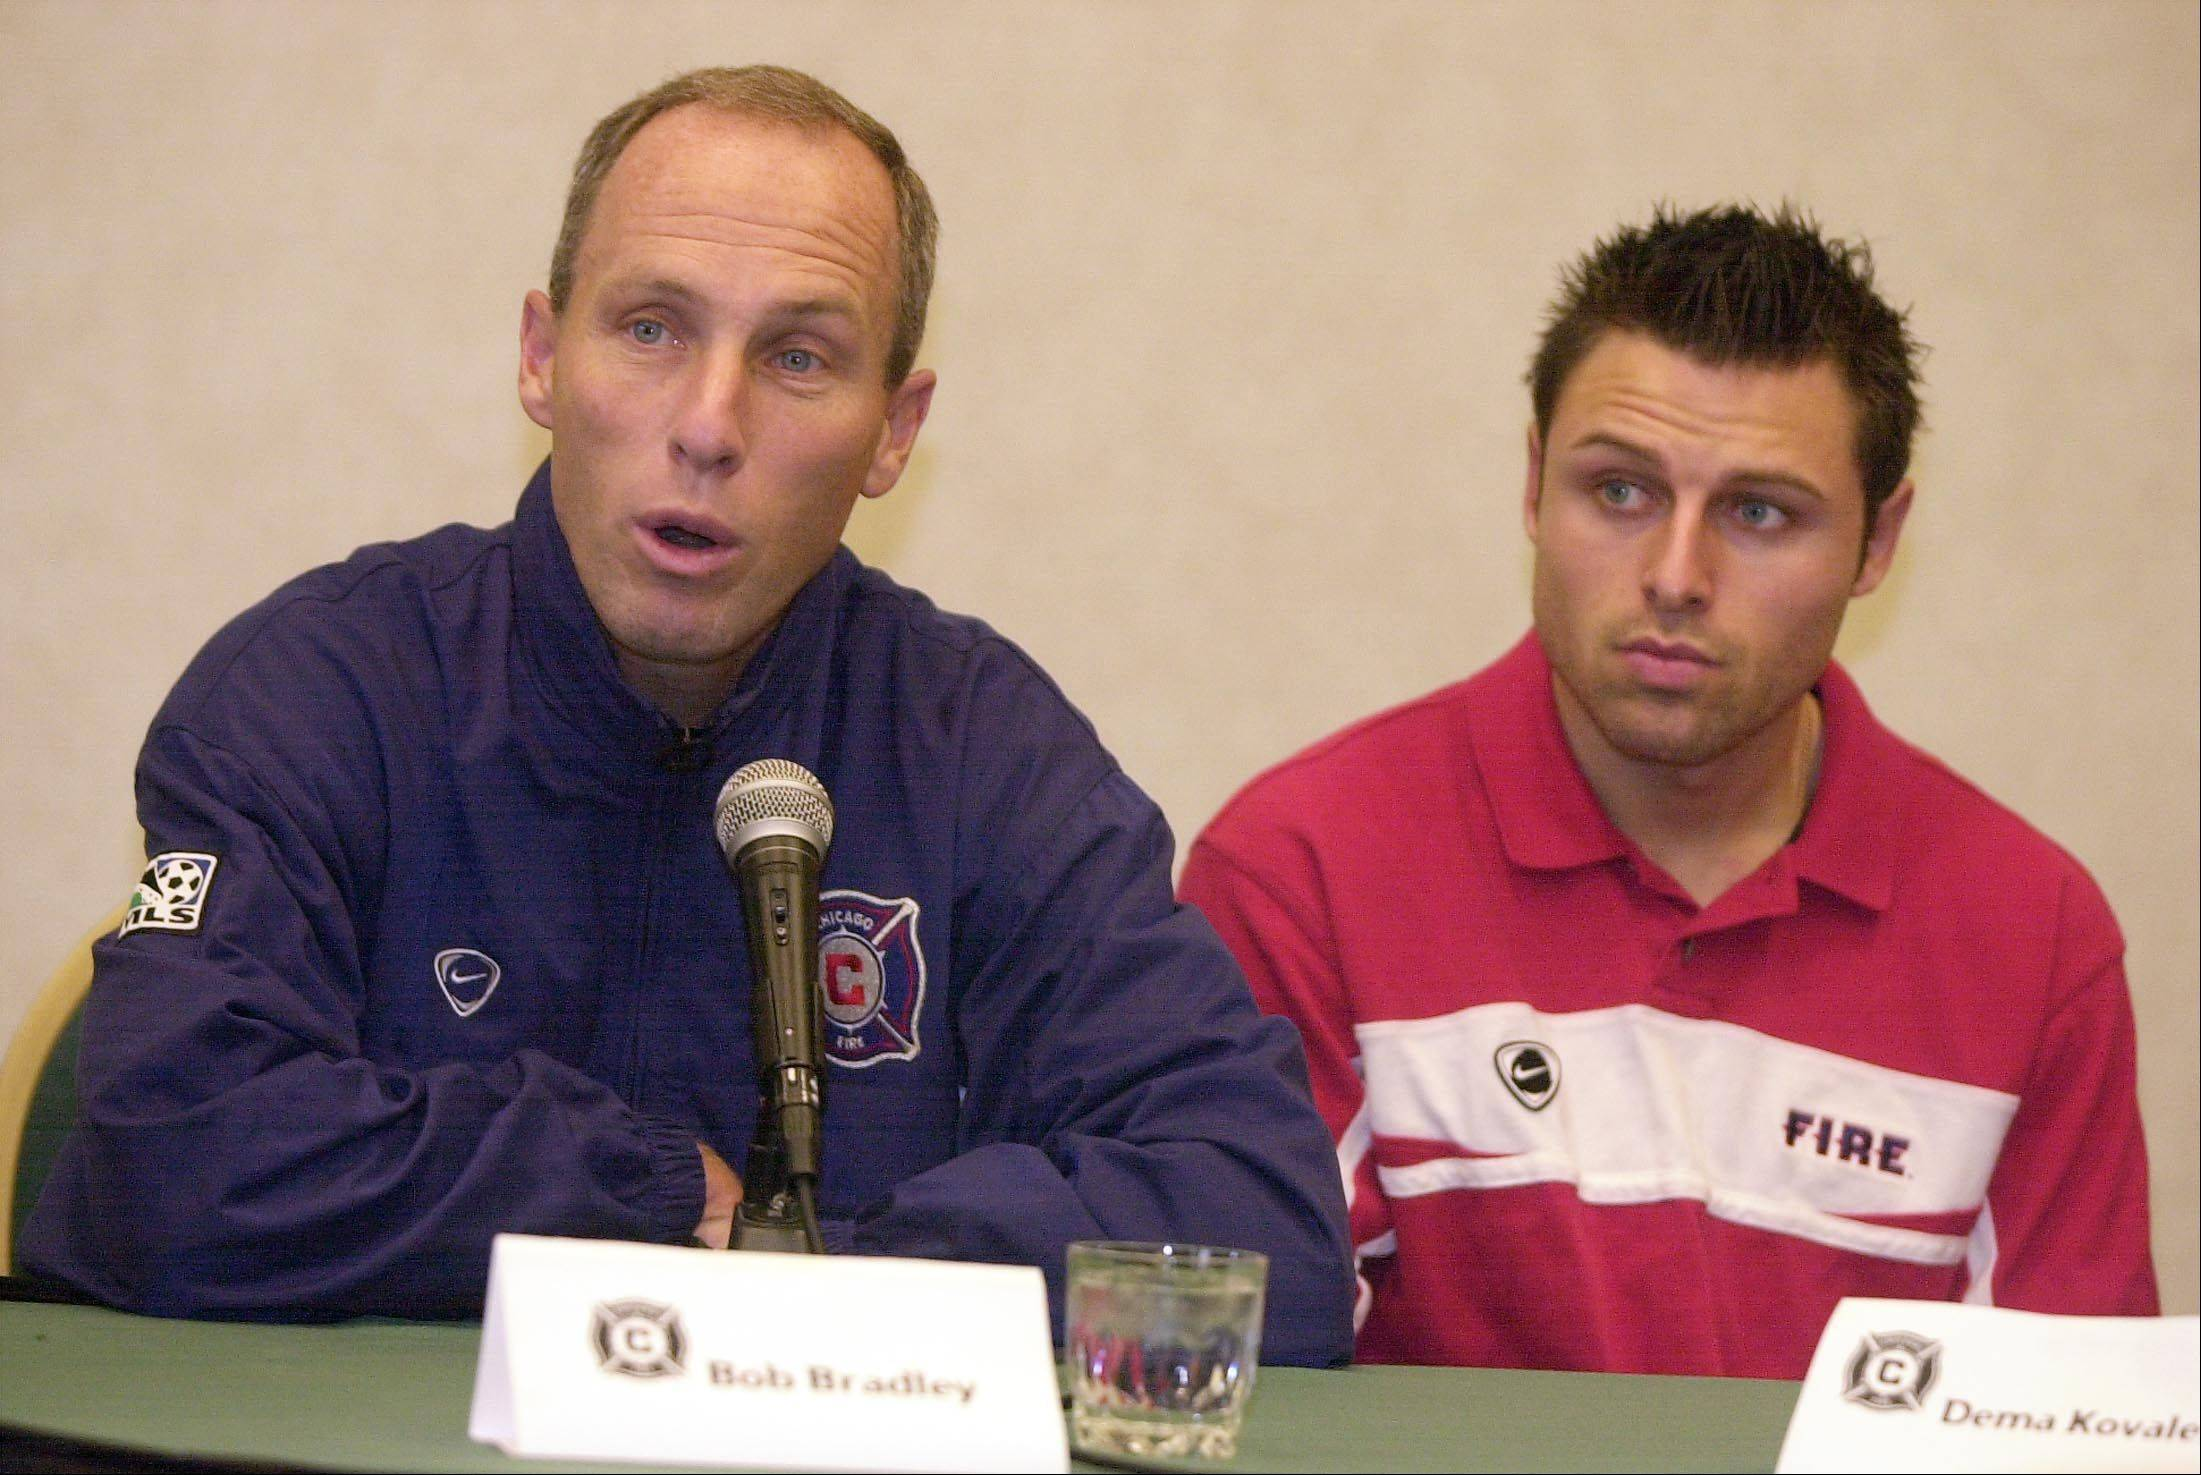 Chicago Fire Press conference at Naperville Holiday Inn Select. Head Coach Bob Bradley and Dema Kovalenko , player, chat with the news media.